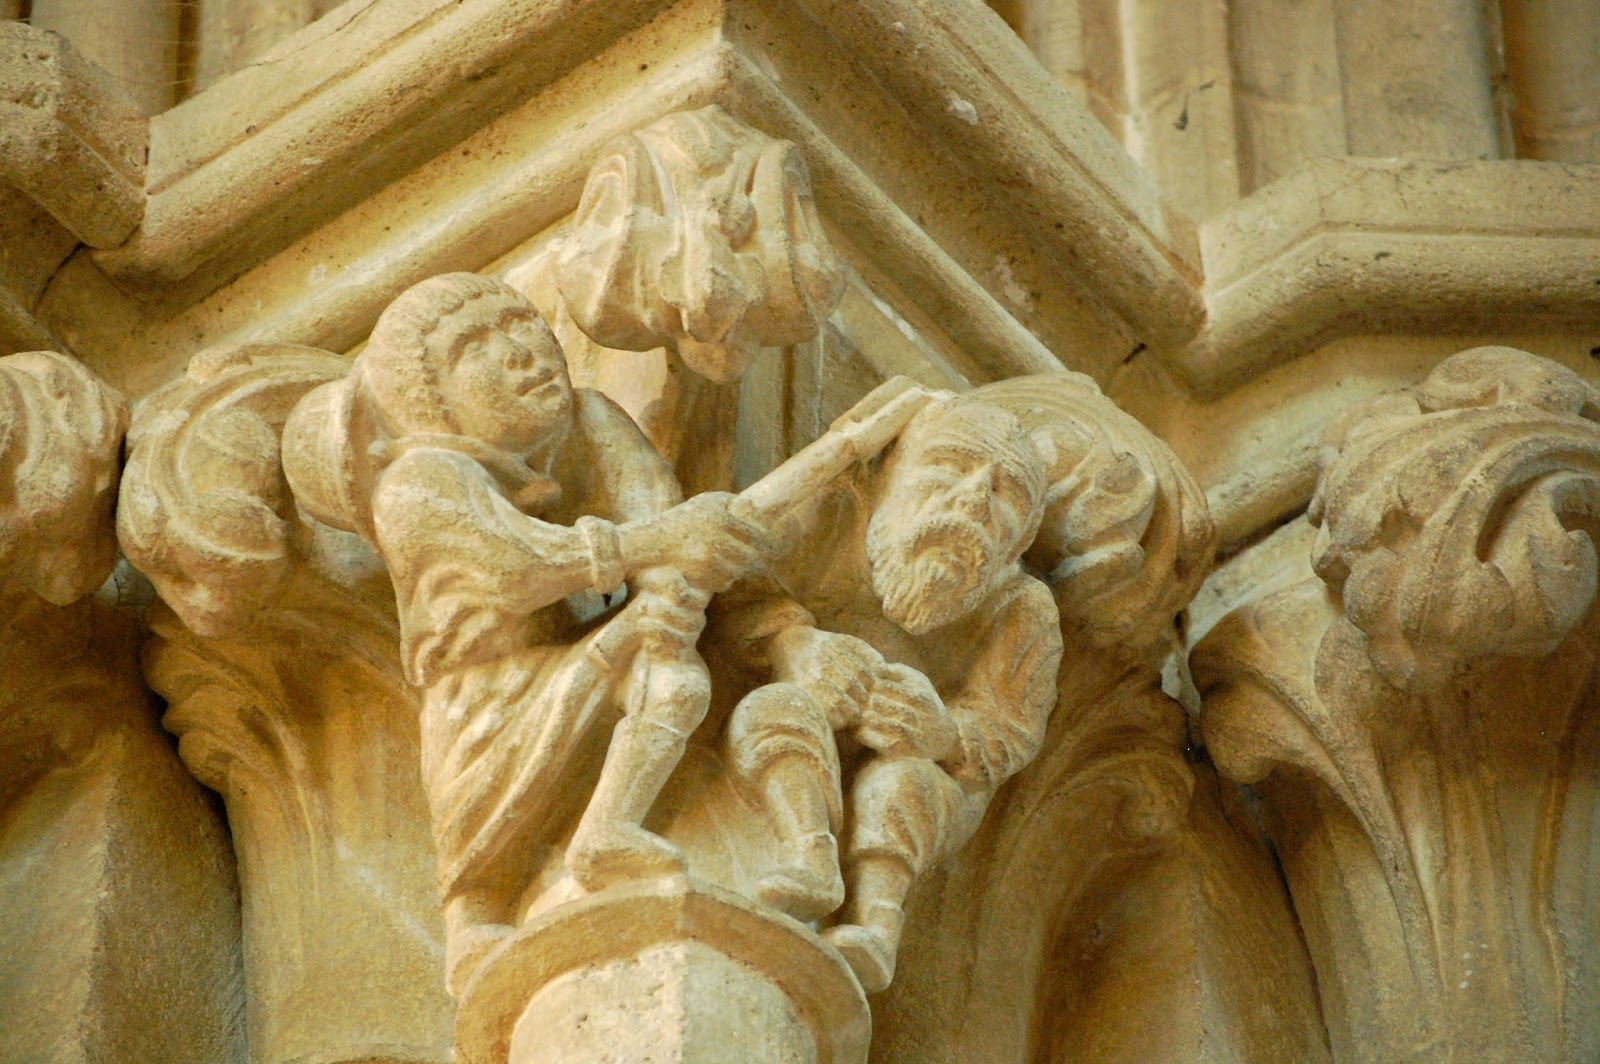 Carving of farmer smacking thief with pitchfork